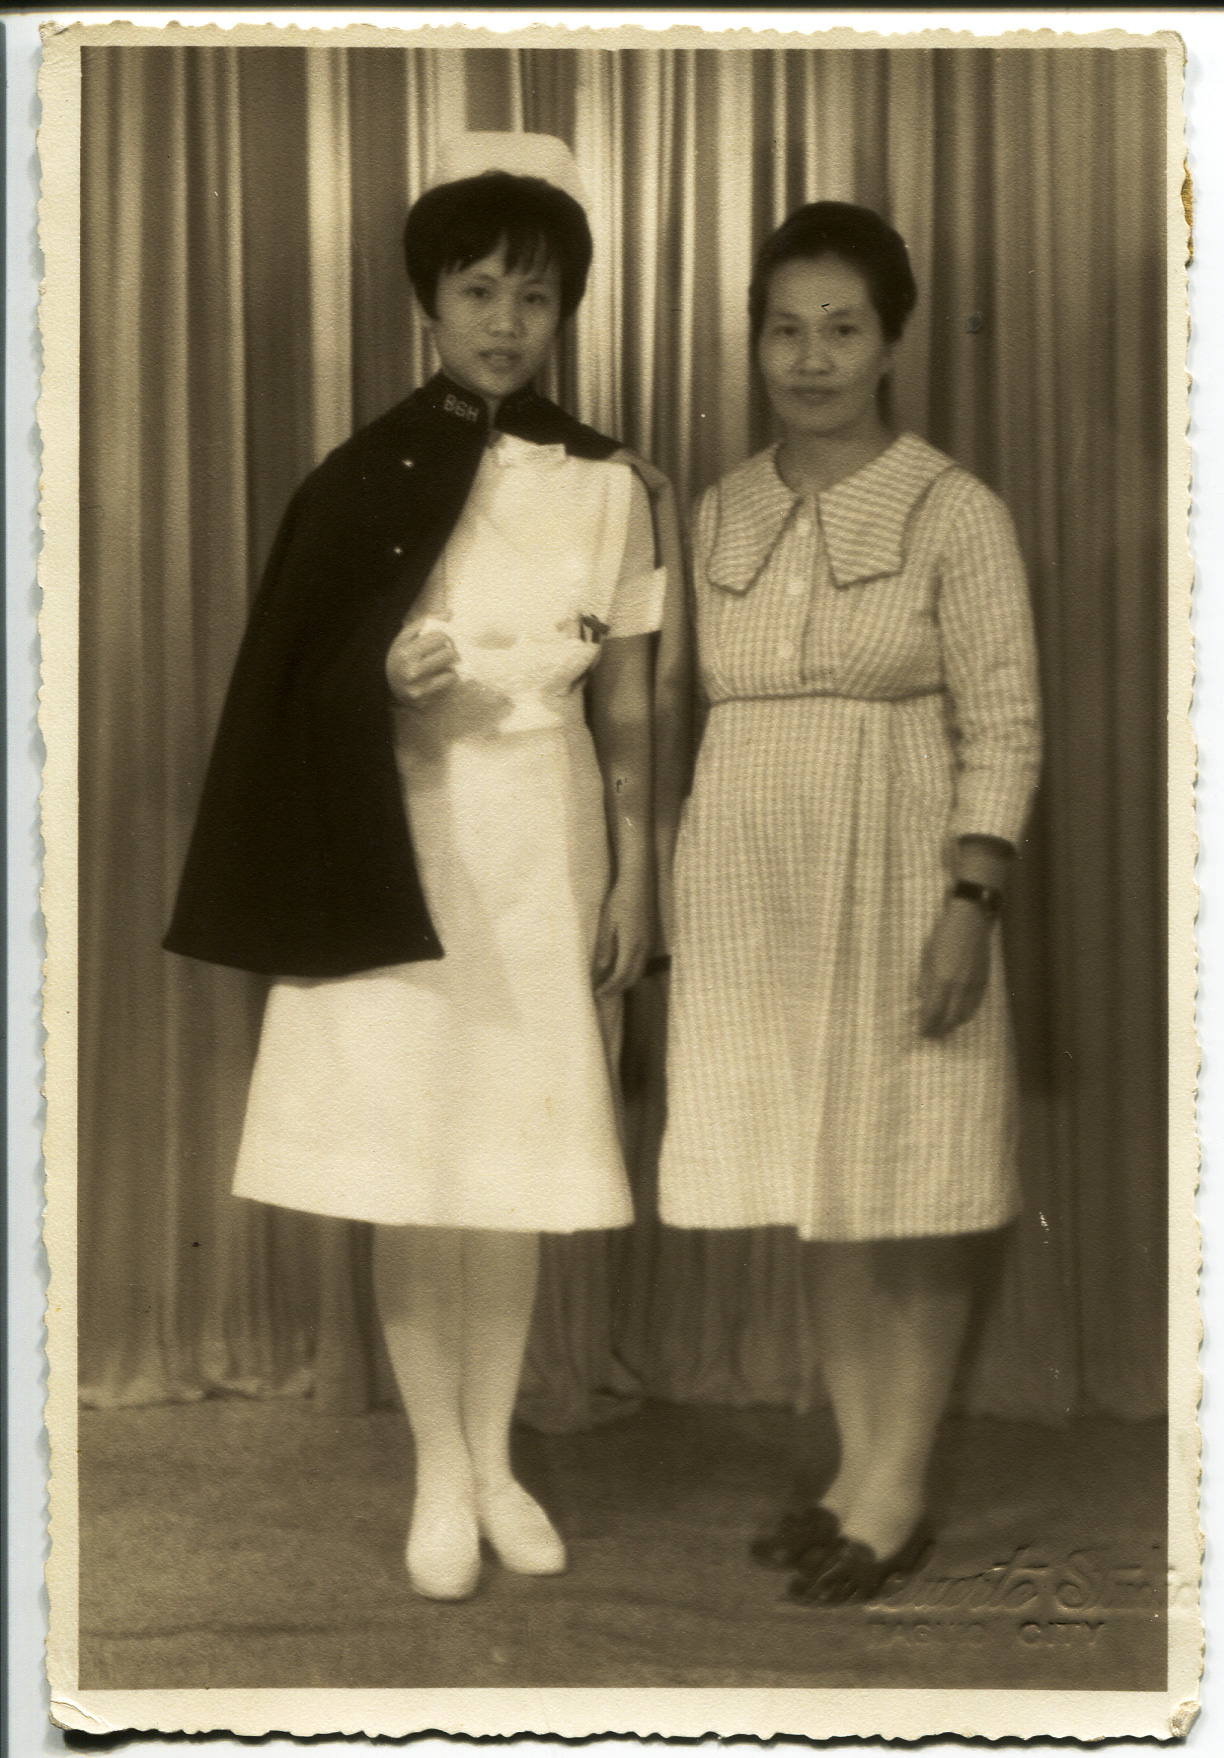 Carol Lamen's mother Melba (left) and grandmother Rosalind (right), taken in Baguio, Philippines.   Any views, findings, conclusions, or recommendations expressed in this story do not necessarily represent those of the National Endowment for the Humanities. [Copyright] Field Museum of Natural History - CC BY-NC